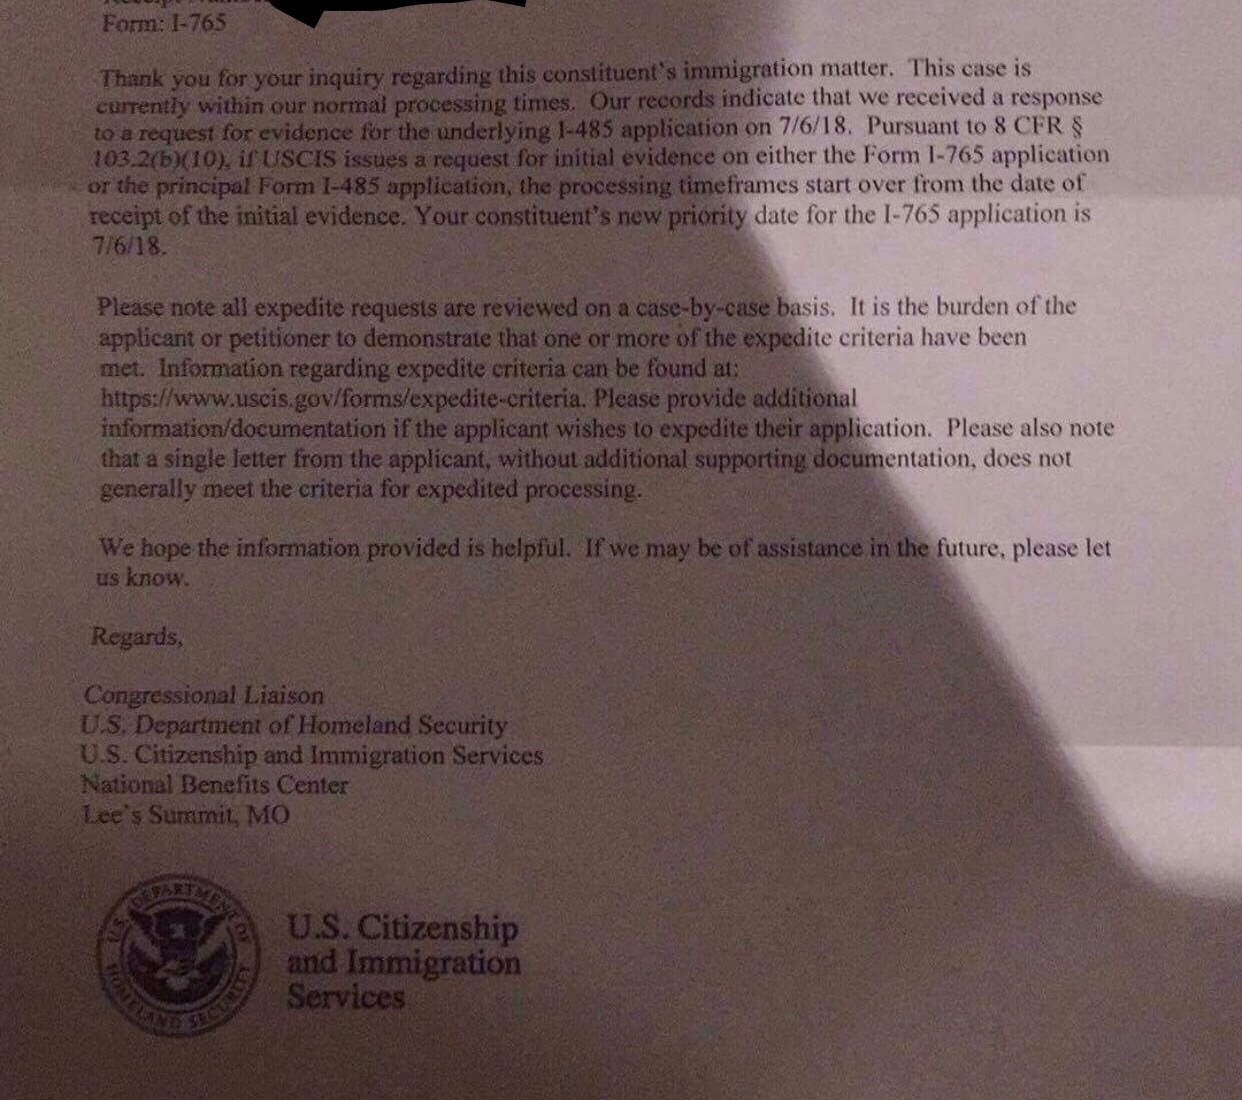 RFIE after 6 months still no EAD  USCIS respond to say clock